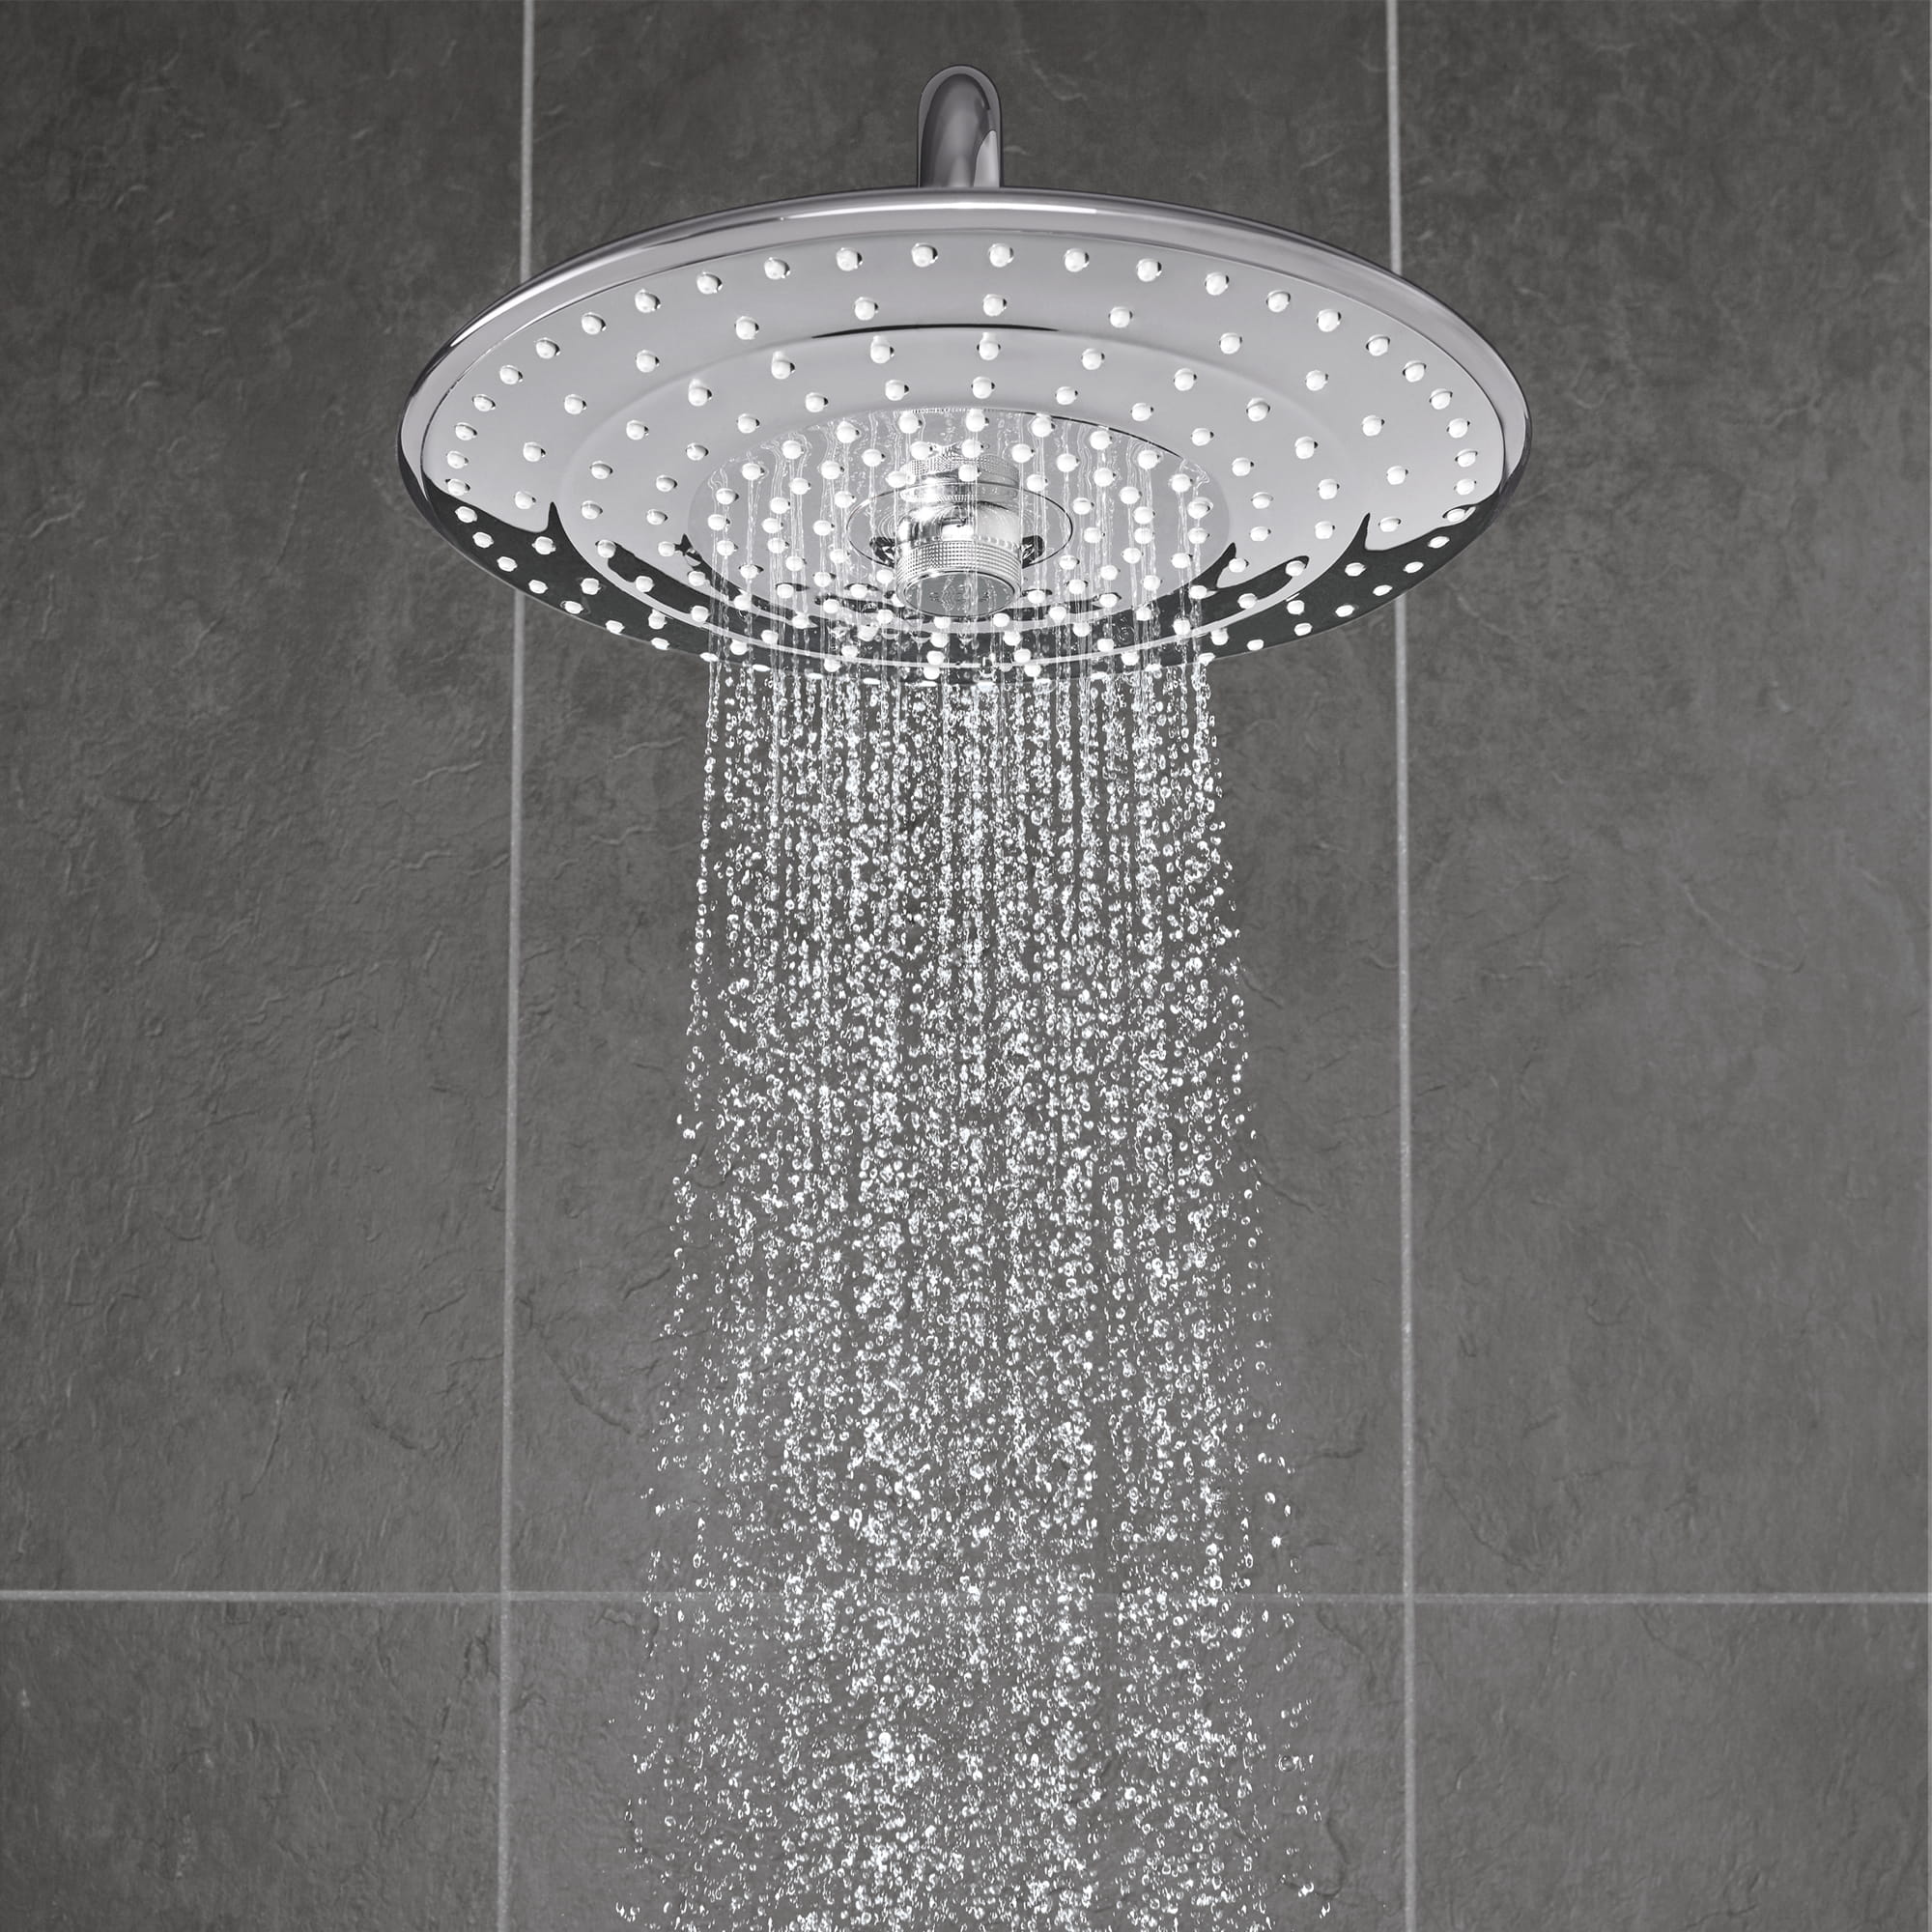 Shower head displaying  Jet spray.